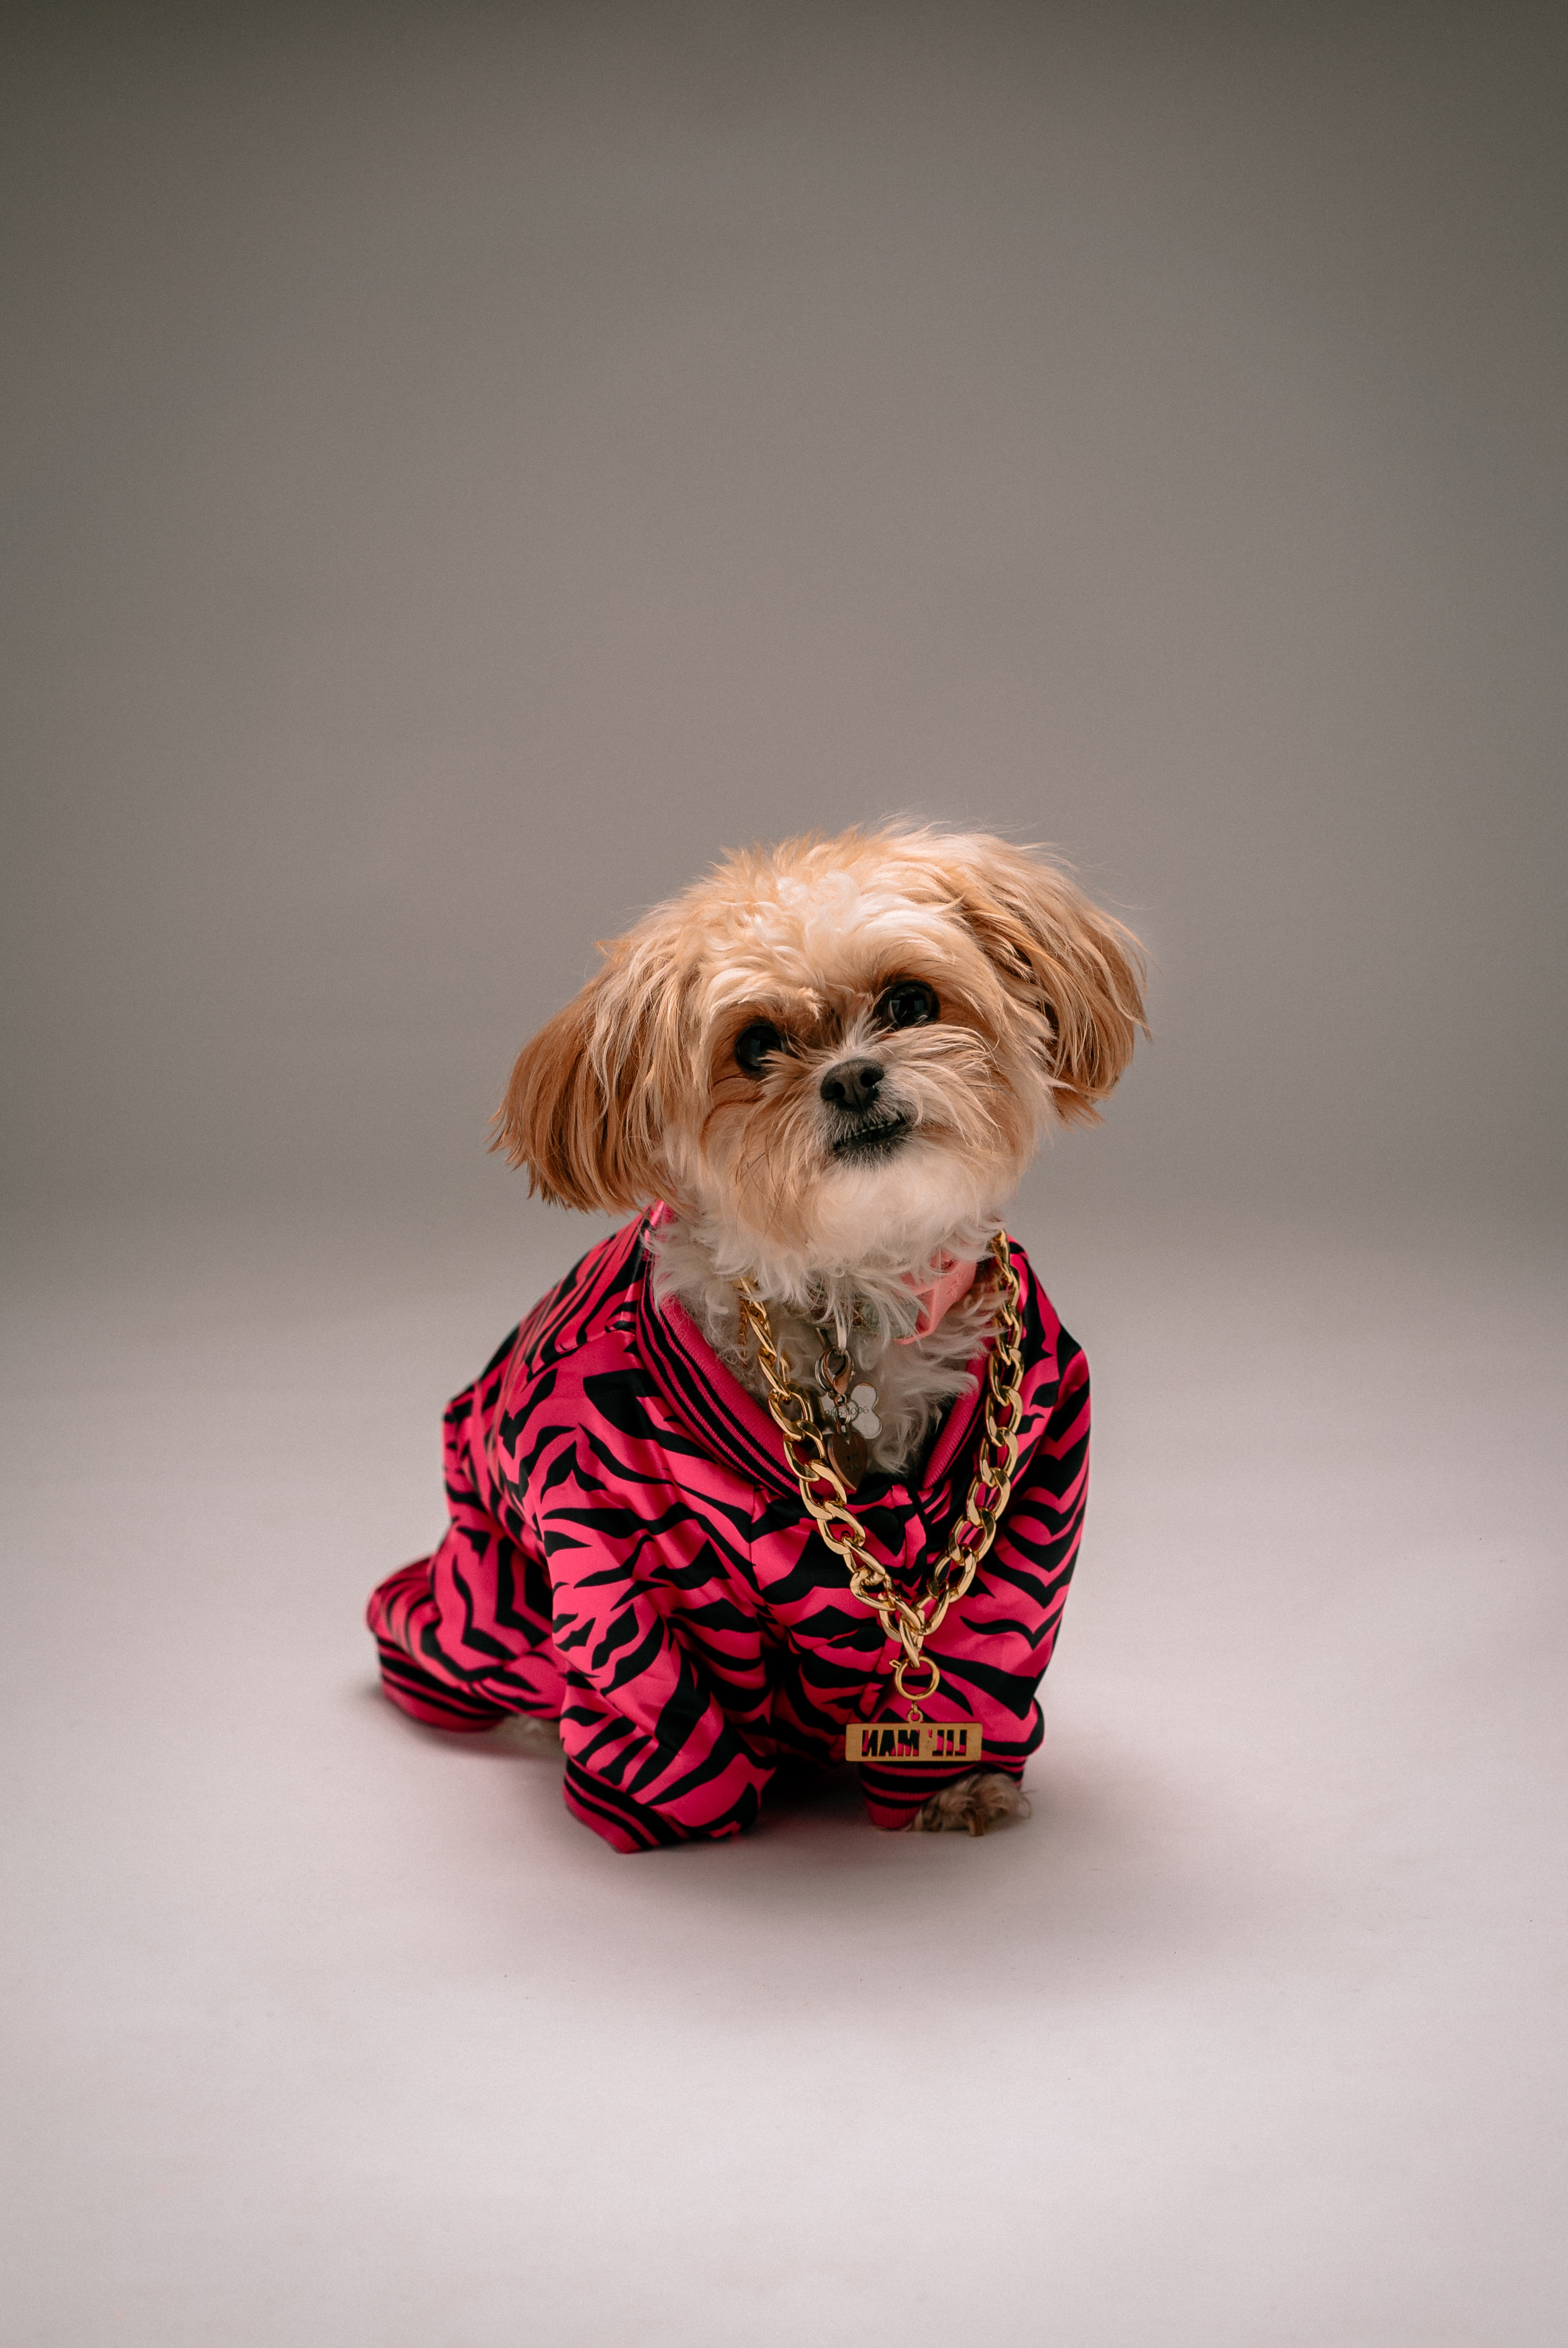 70609 download wallpaper Animals, Shih Tzu, Dog, Style, Chain, Pet screensavers and pictures for free